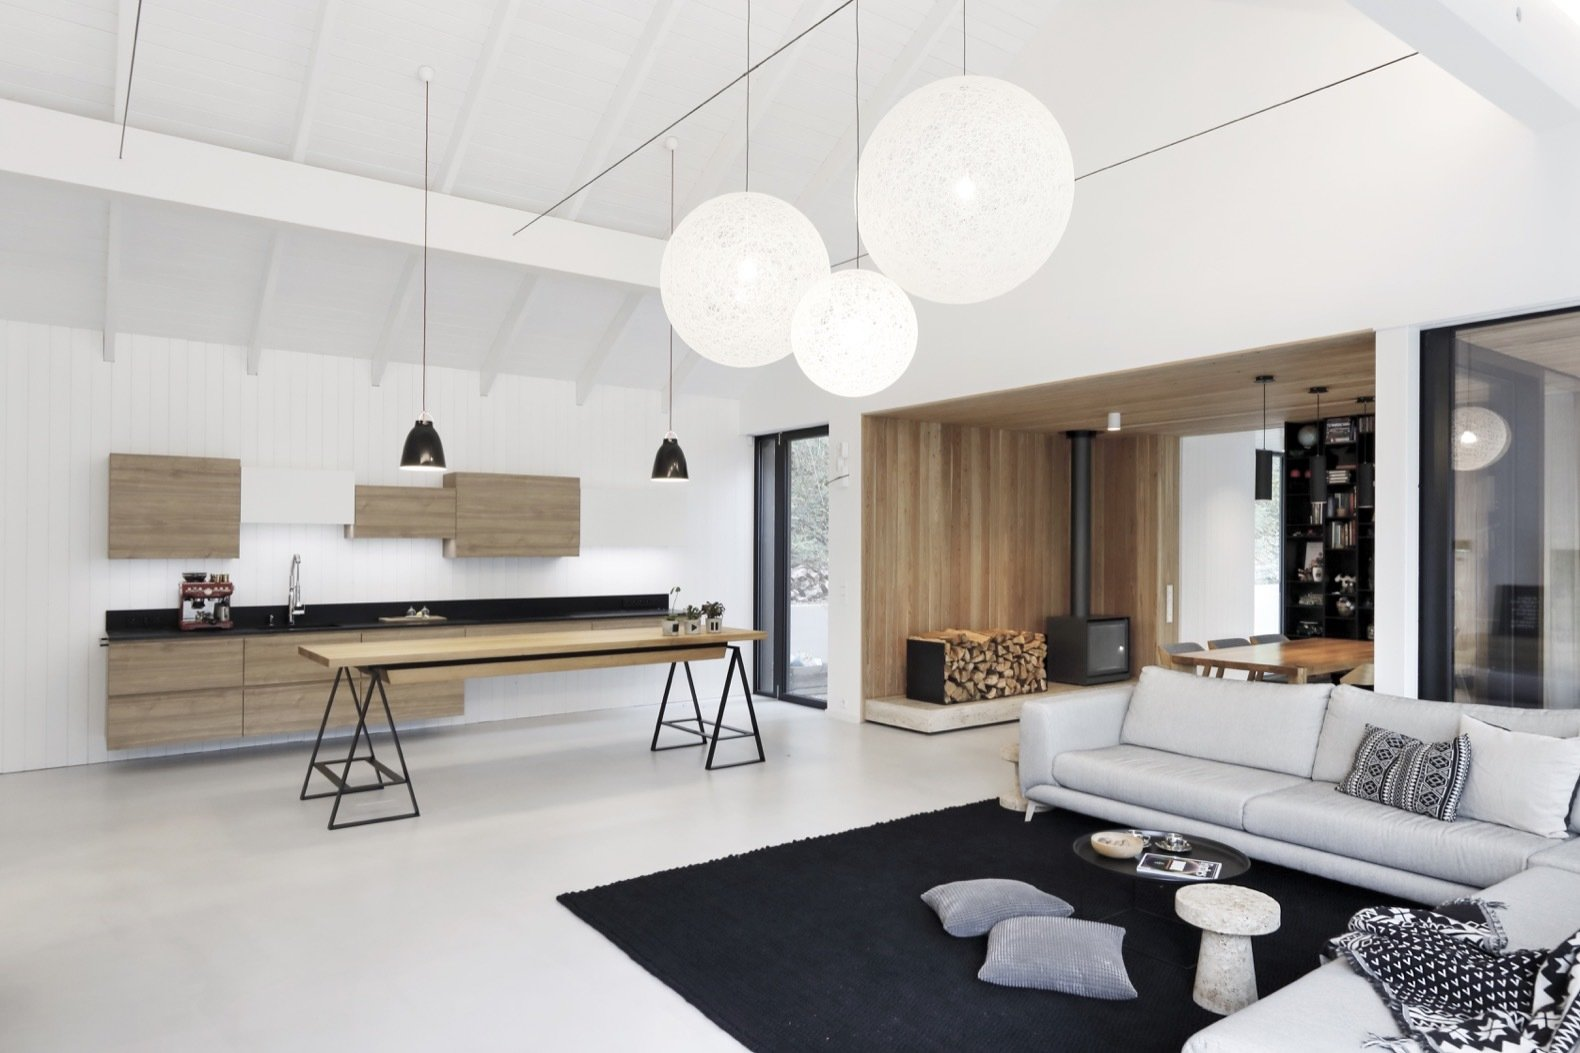 Living Room, Table, Pendant Lighting, Wood Burning Fireplace, Sectional, Coffee Tables, and Rug Floor The vaulted ceiling adds to the home's bright and airy character.     Photo 8 of 15 in This Minimalist Bungalow Will Change Color Over Time